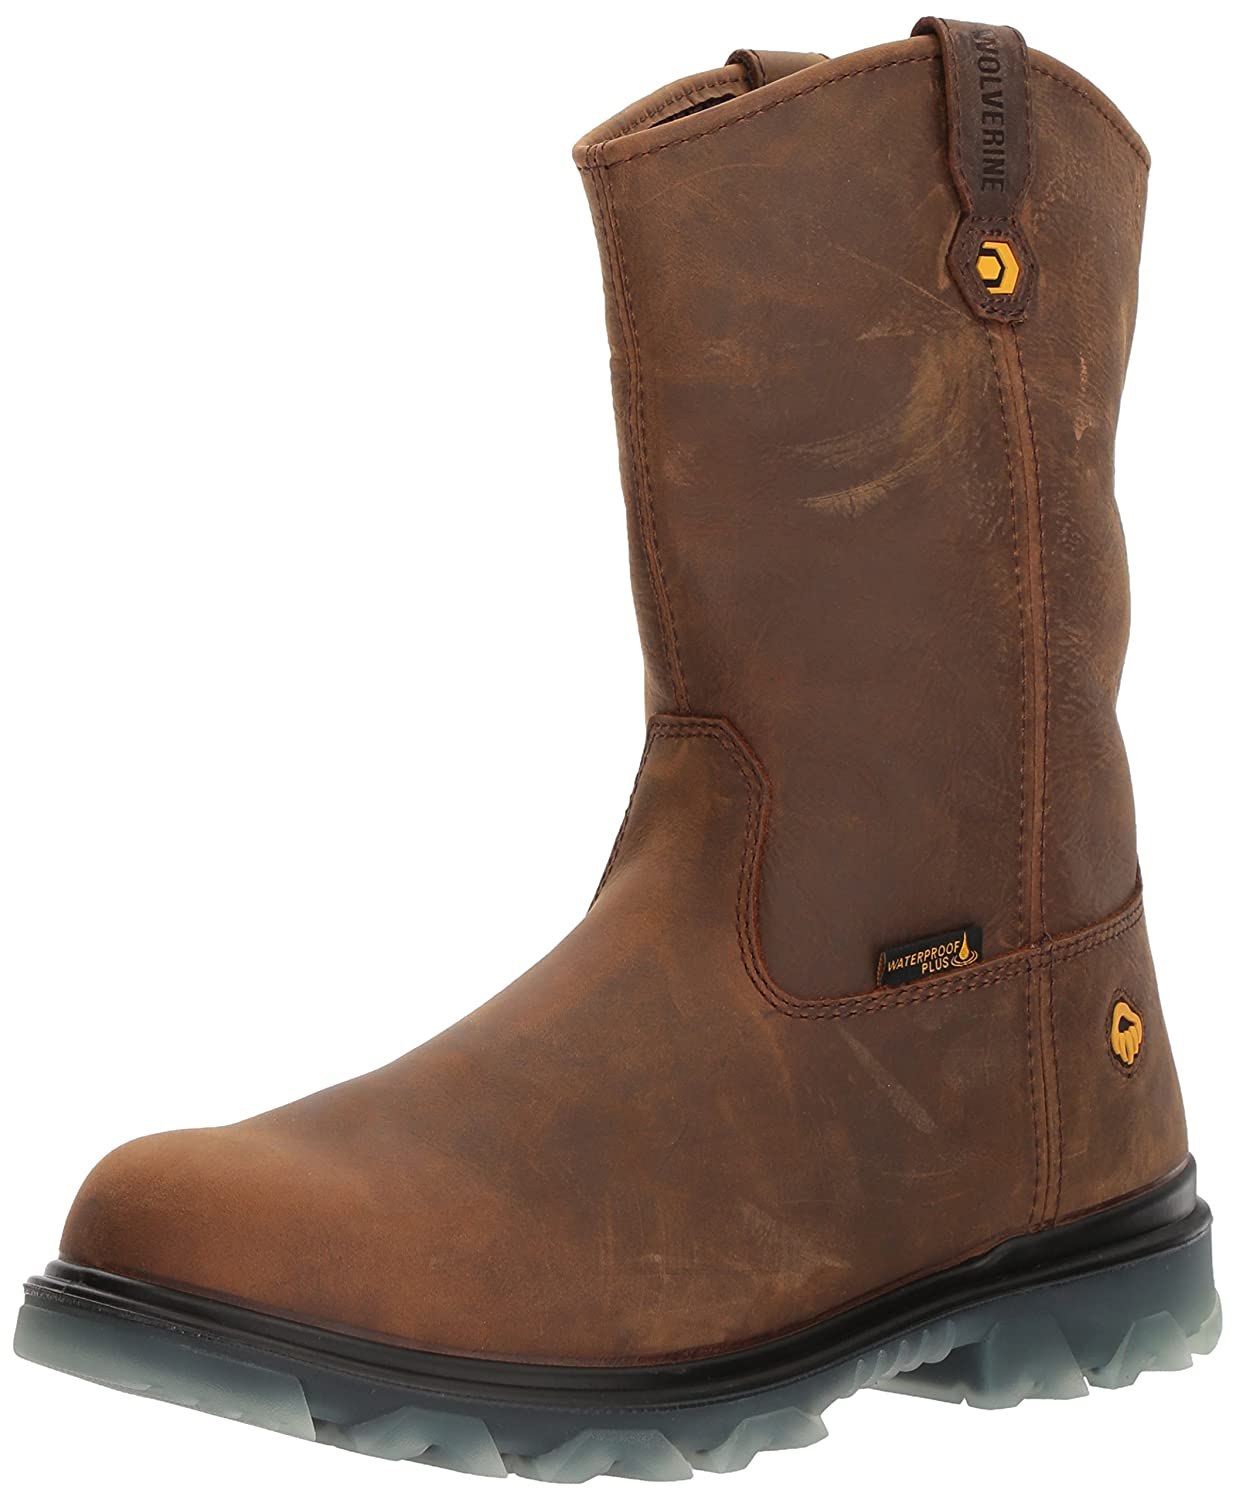 ed8c5b08811 Wolverine Men's I-90 Waterproof Composite-Toe Wellington Construction Boot